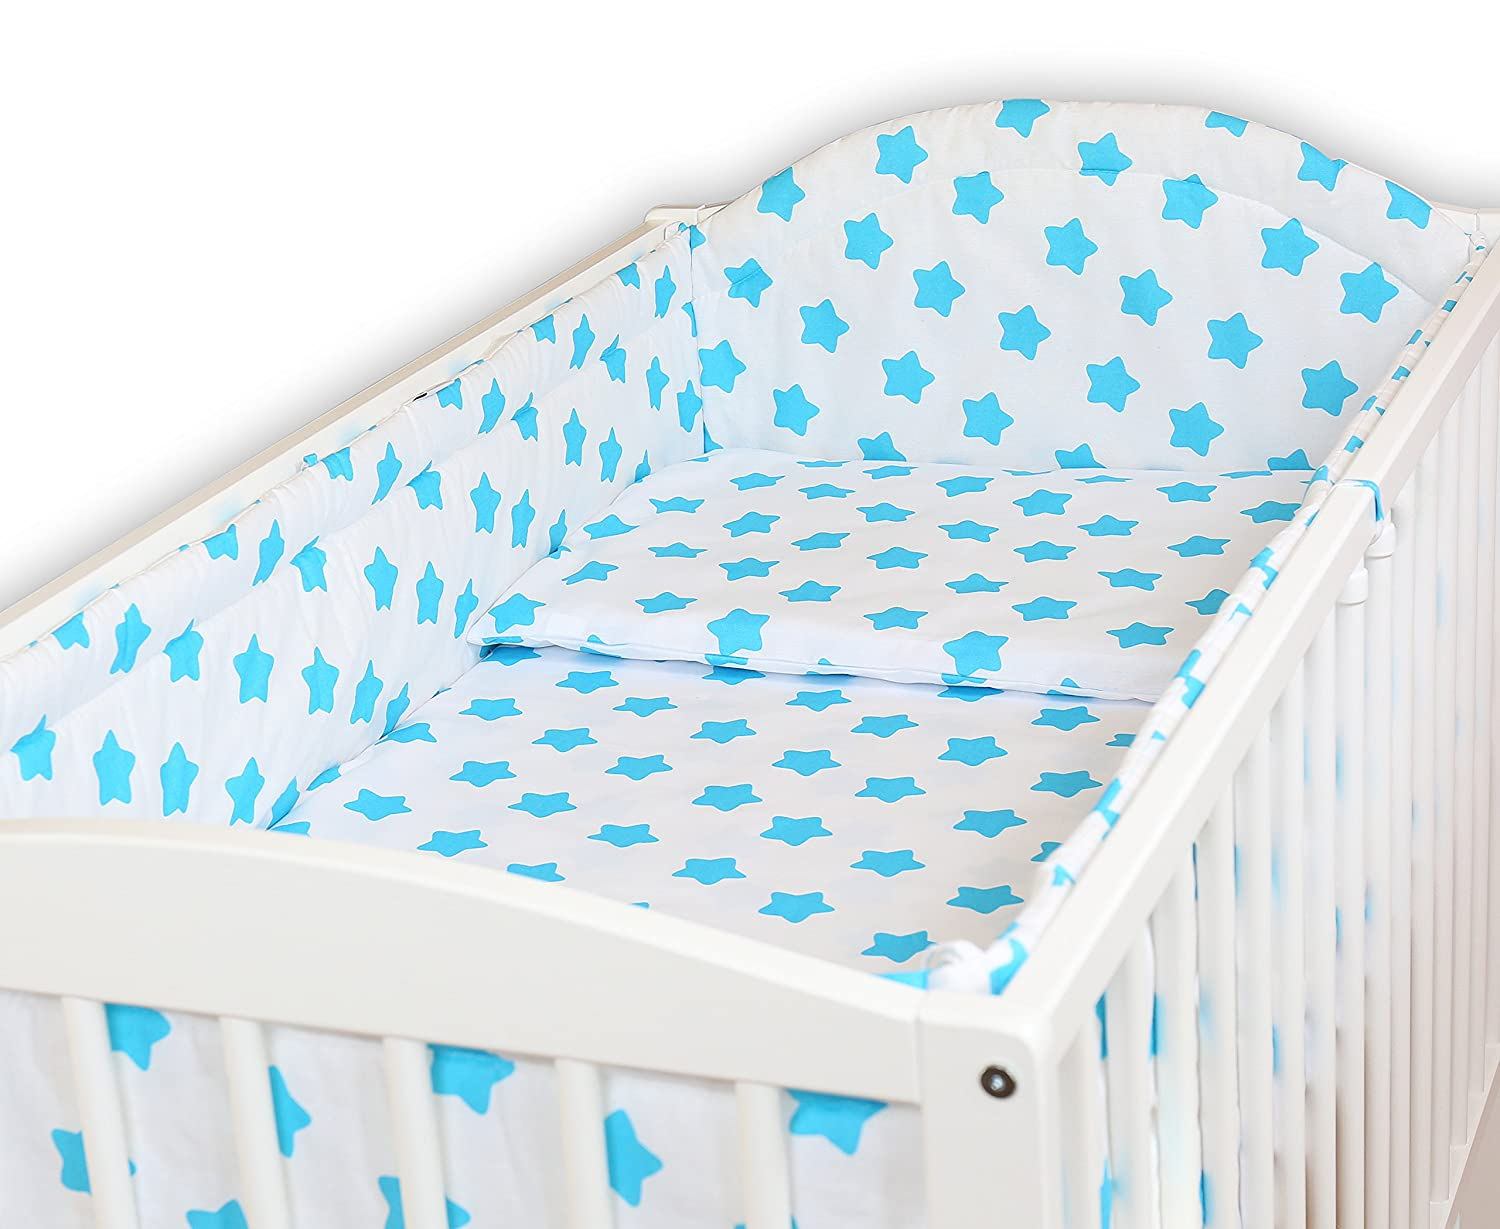 SAFARI BLUE BABY BEDDING SET ALLROUND BUMPER PILLOW DUVET COVER FOR COT 120x60 SET 5 PC